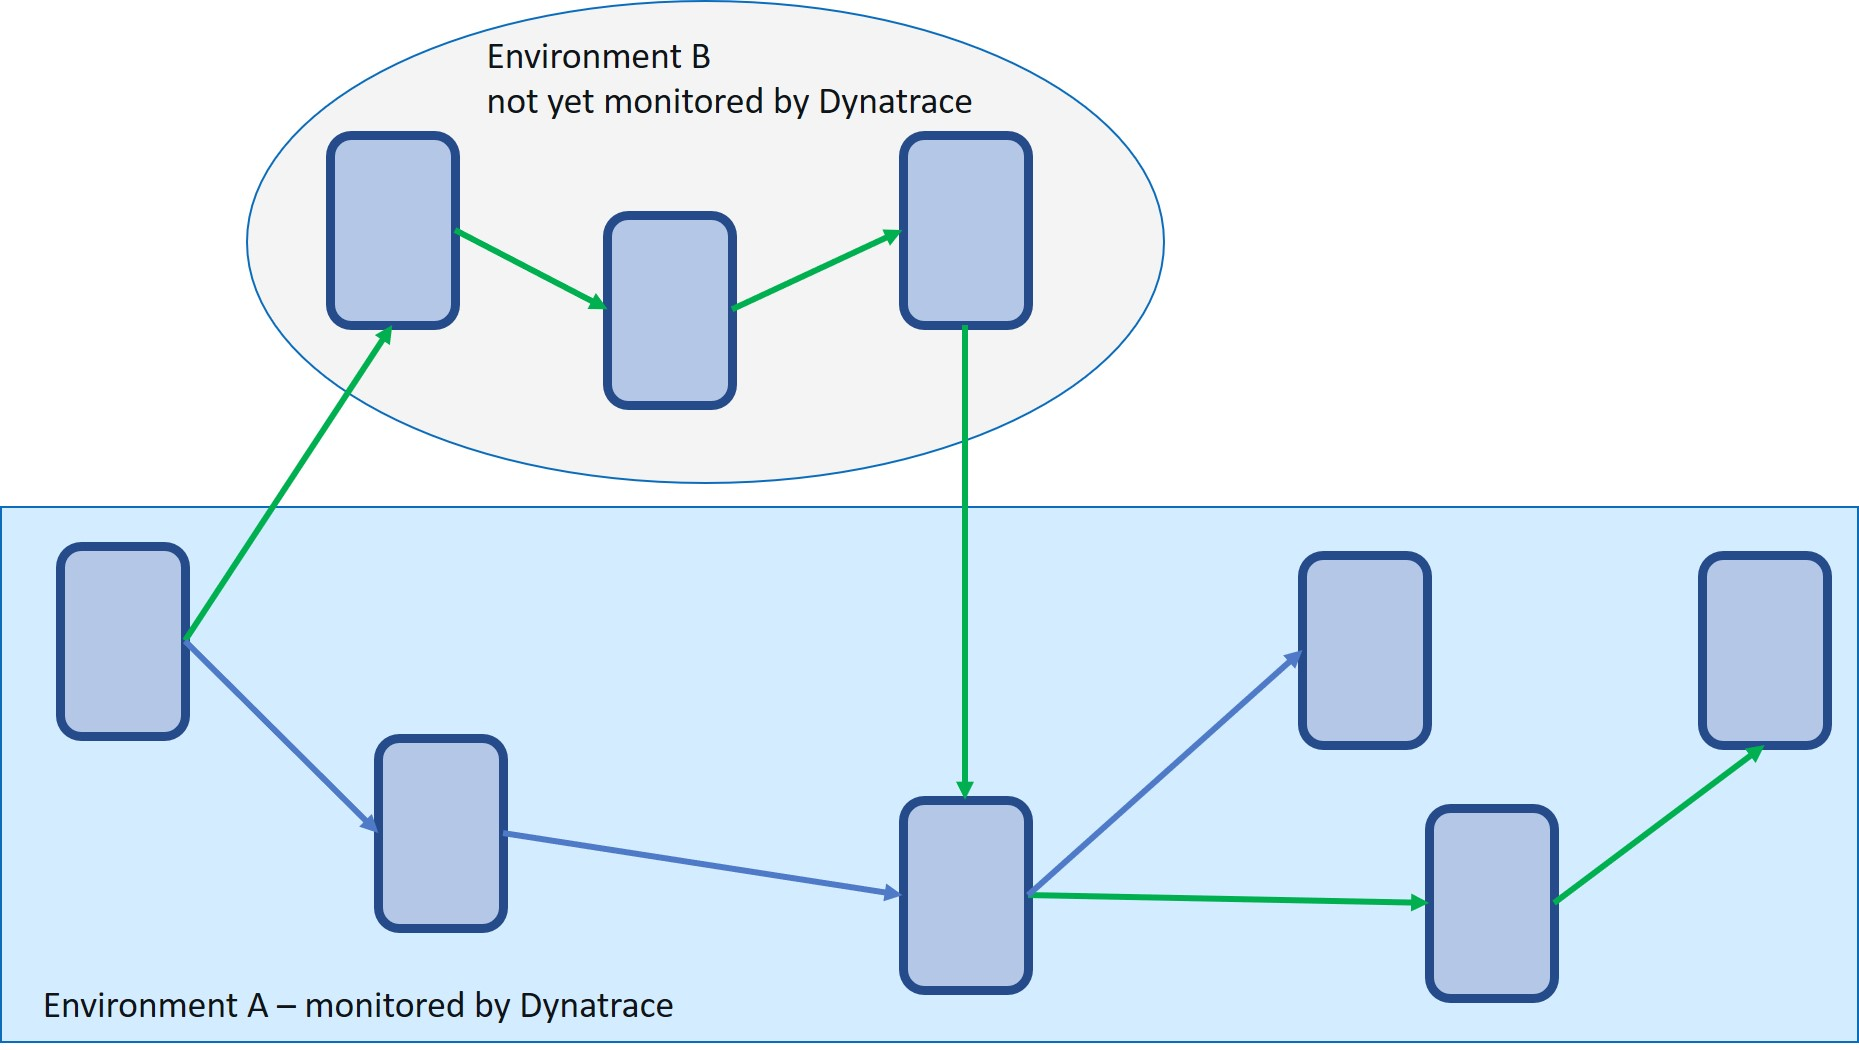 Multiple dev teams, not all with microservices monitored by Dynatrace